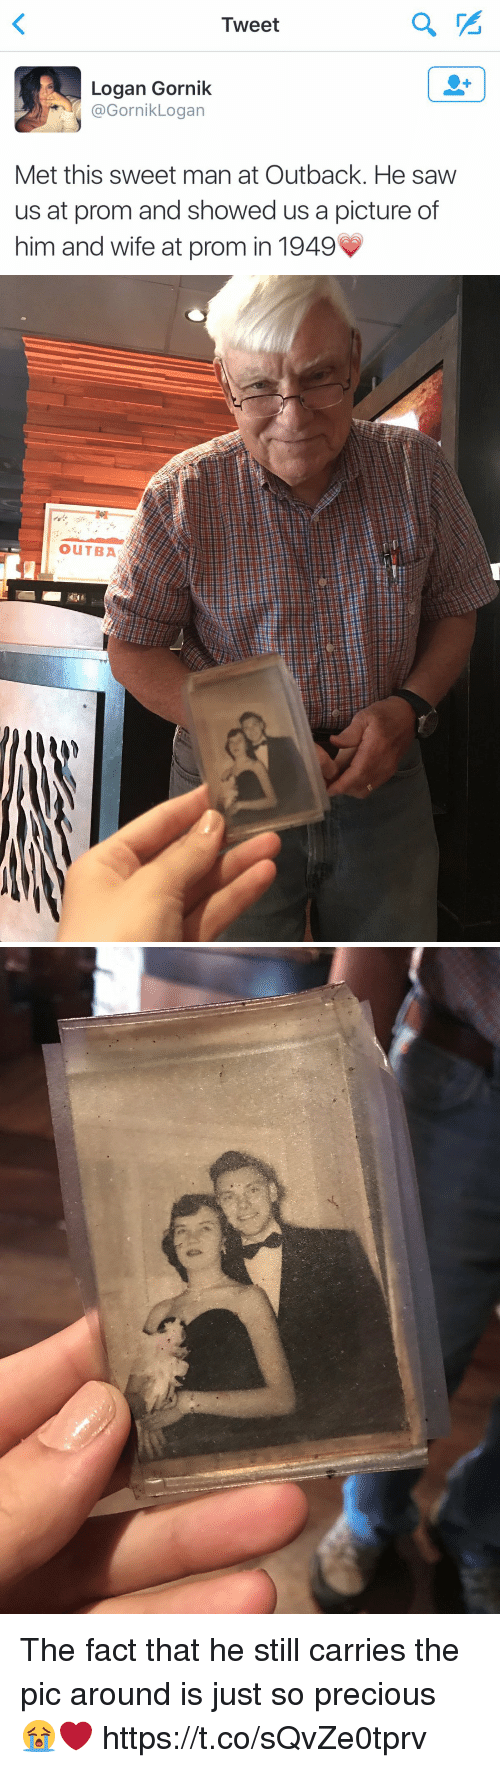 Precious, Saw, and Outback: Tweet  Logan Gornik  @Gornik Logan  Met this sweet man at Outback. He saw  us at prom and showed us a picture of  him and wife at prom in 1949   OuTBA The fact that he still carries the pic around is just so precious 😭❤️ https://t.co/sQvZe0tprv